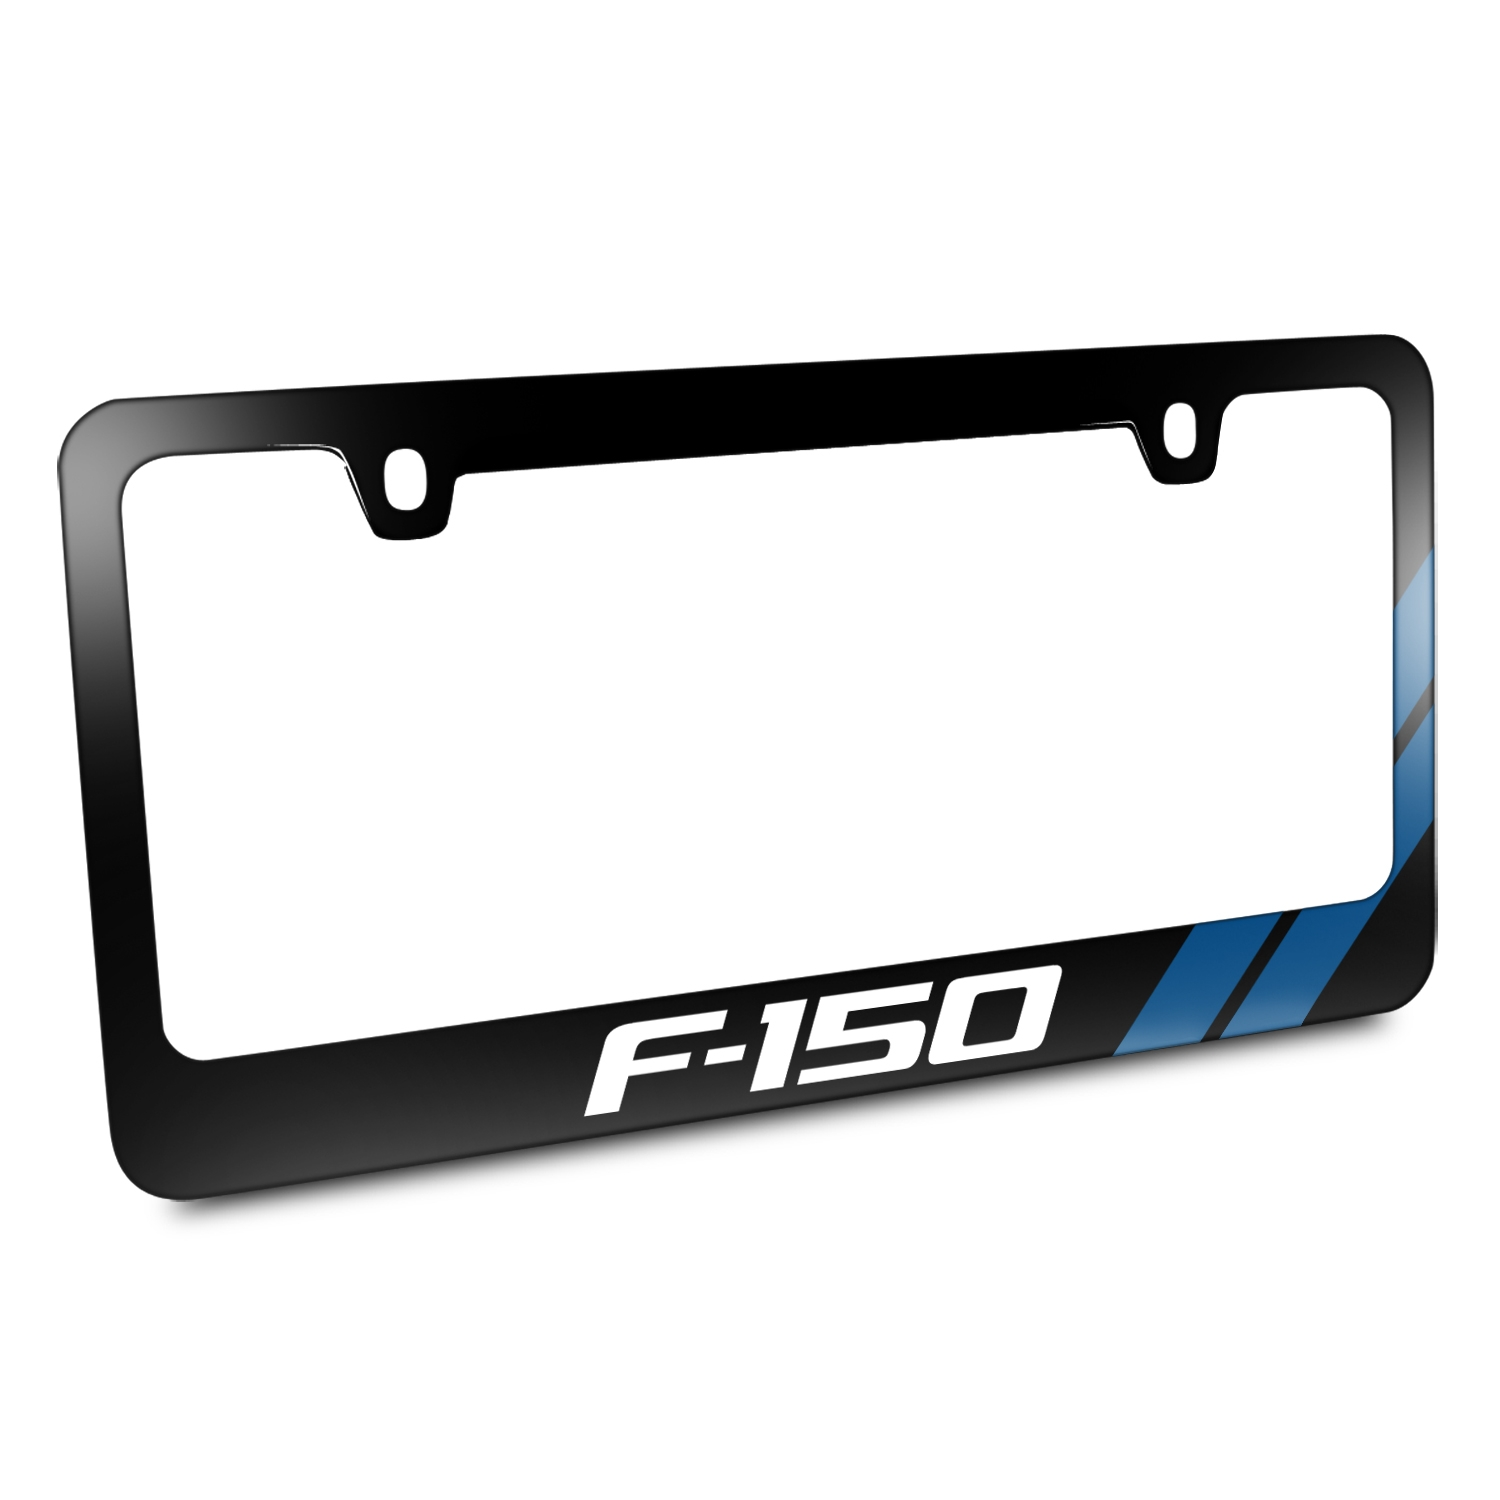 Ford F-150 Blue Sports Stripe Black Metal License Plate Frame